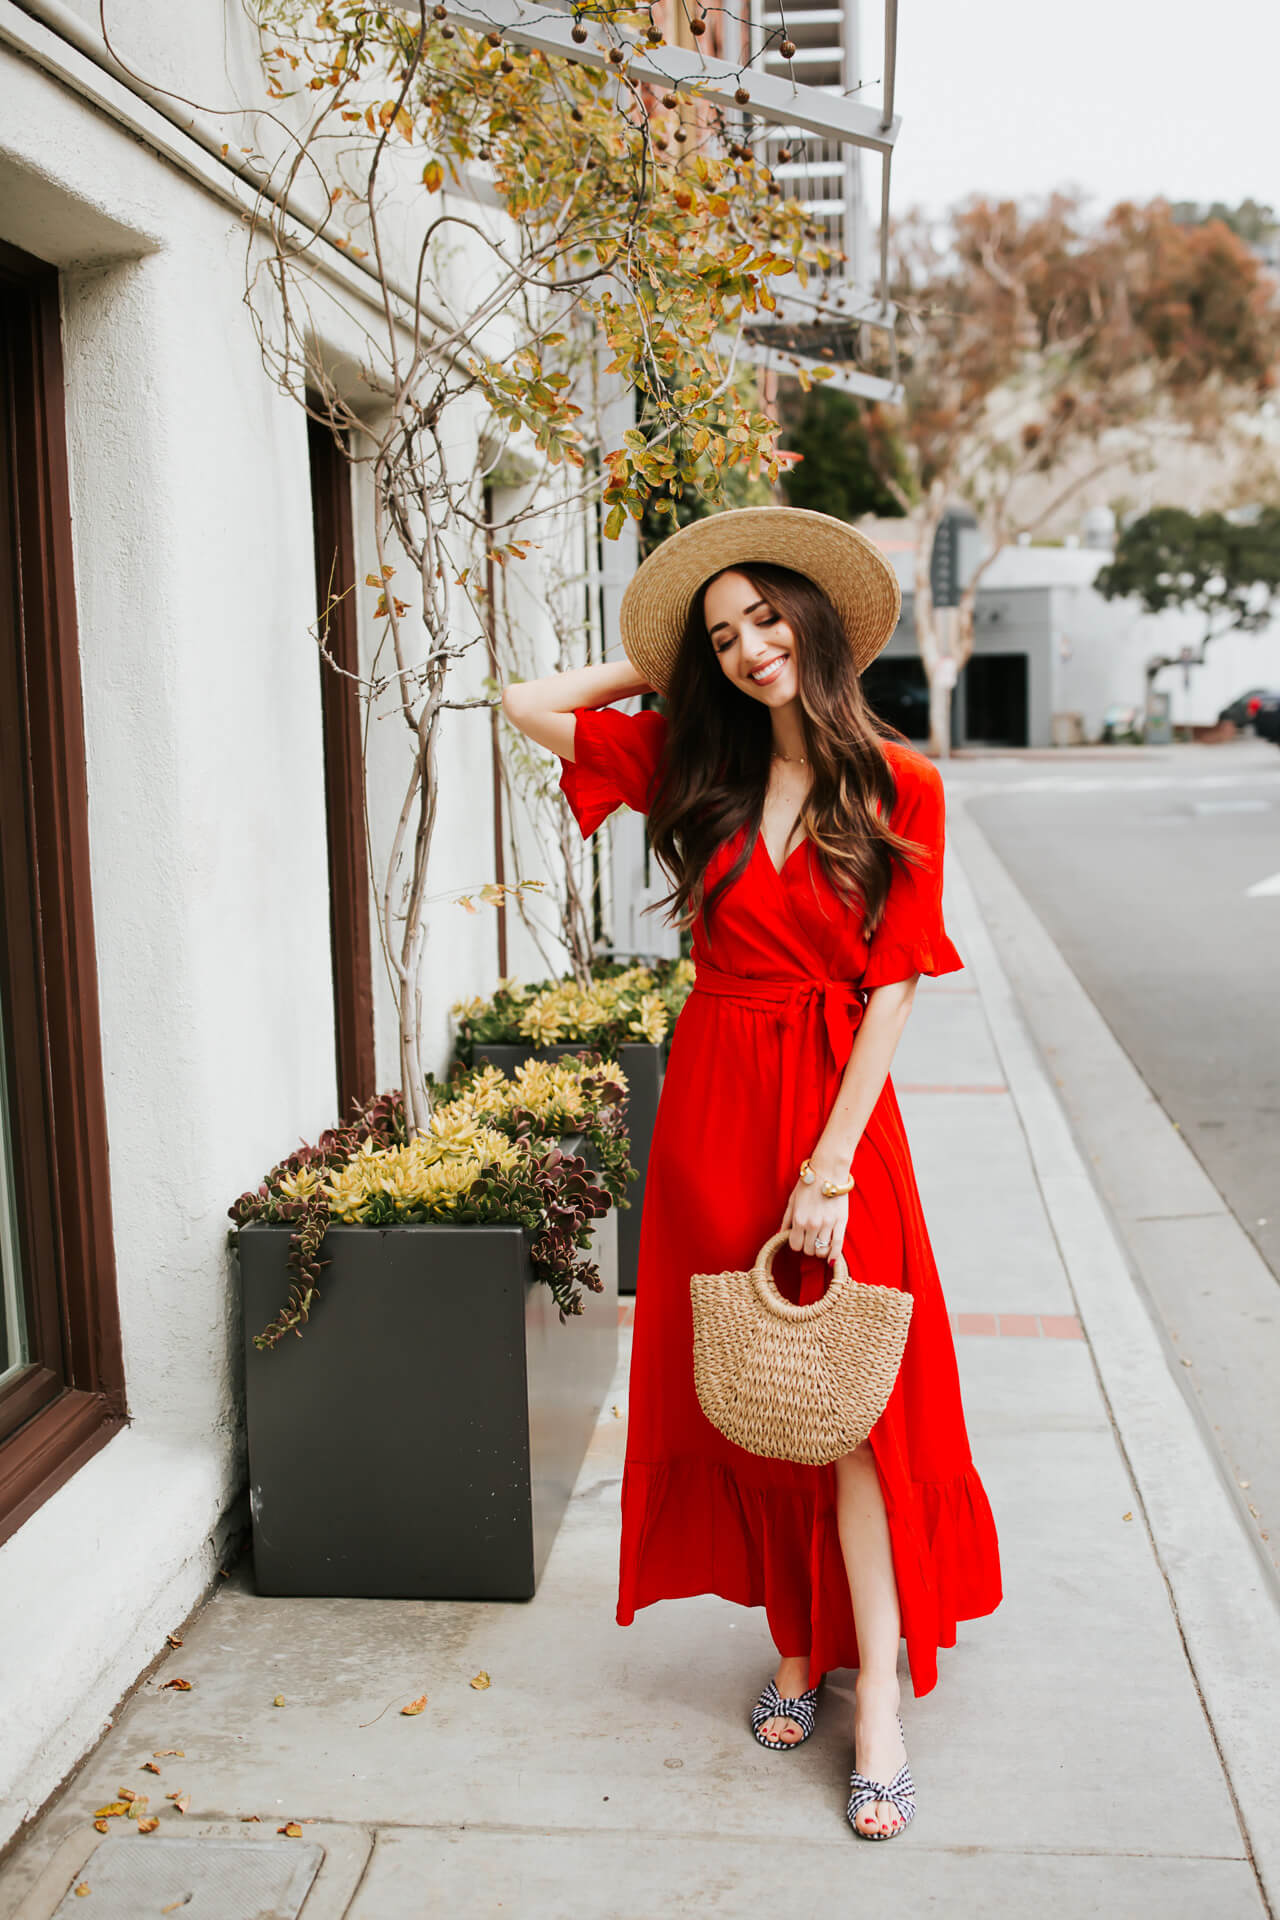 cute straw hat with red wrap dress - would be perfect as a beach coverup dress